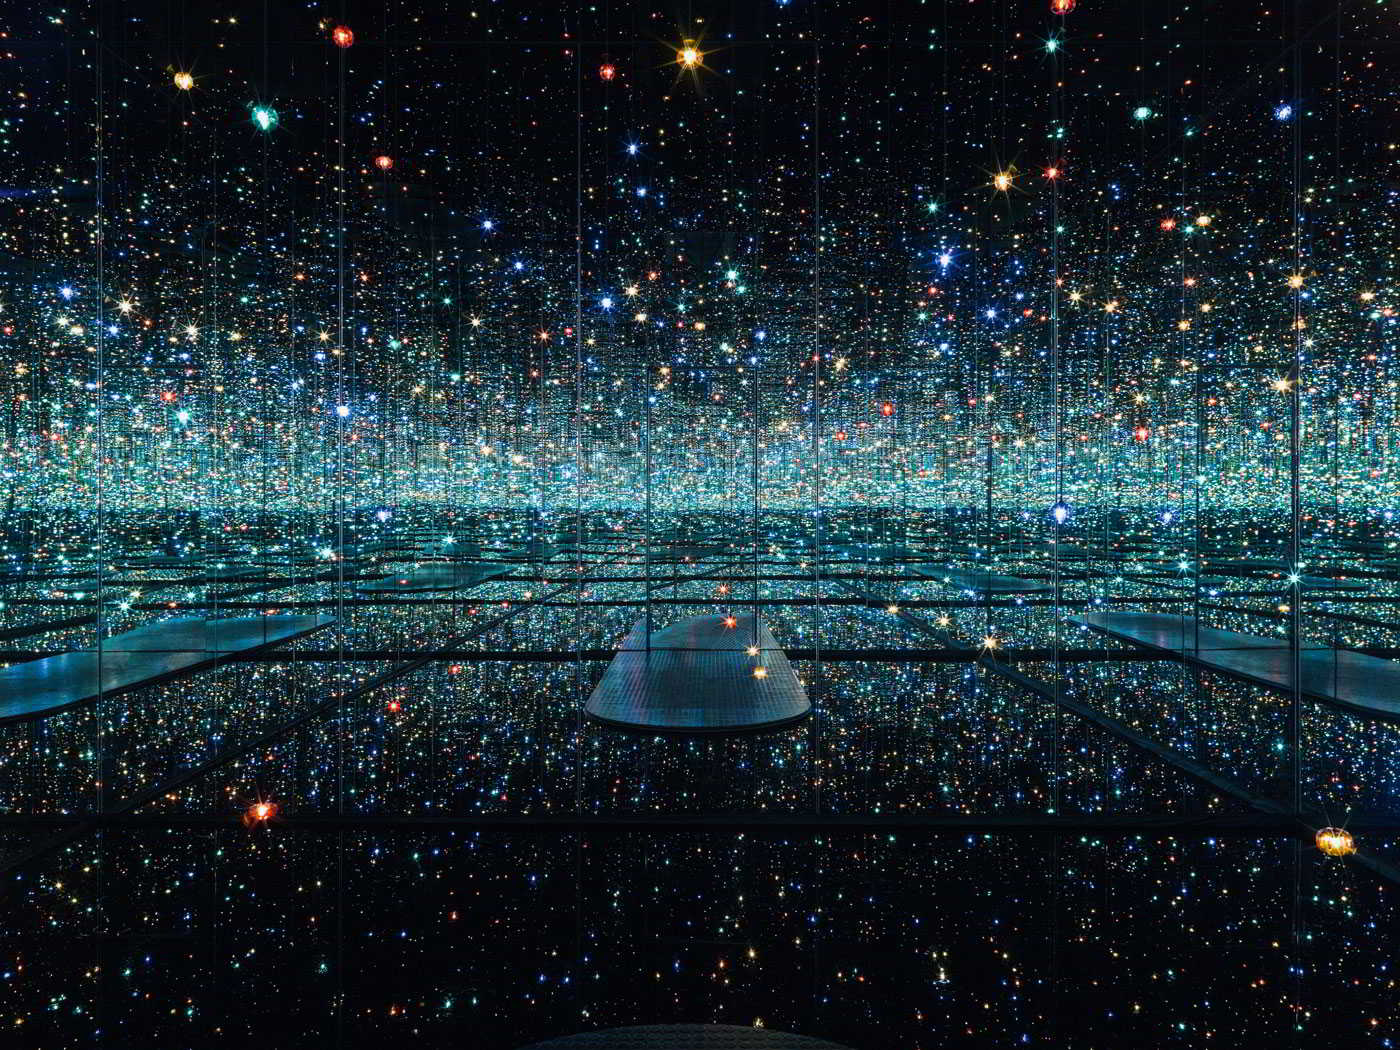 "Blue Moon, Titel: Yayoi Kusama ""Infinity mirrored Room — The Souls of Millions of Light Years away"" (2013) © Yayoi Kusama, Courtesy of David Zwirner, New York; Ota Fine Arts, Tokyo / Singapore; Victoria Miro, London; Kusama Enterprise / Sammlung HGN"